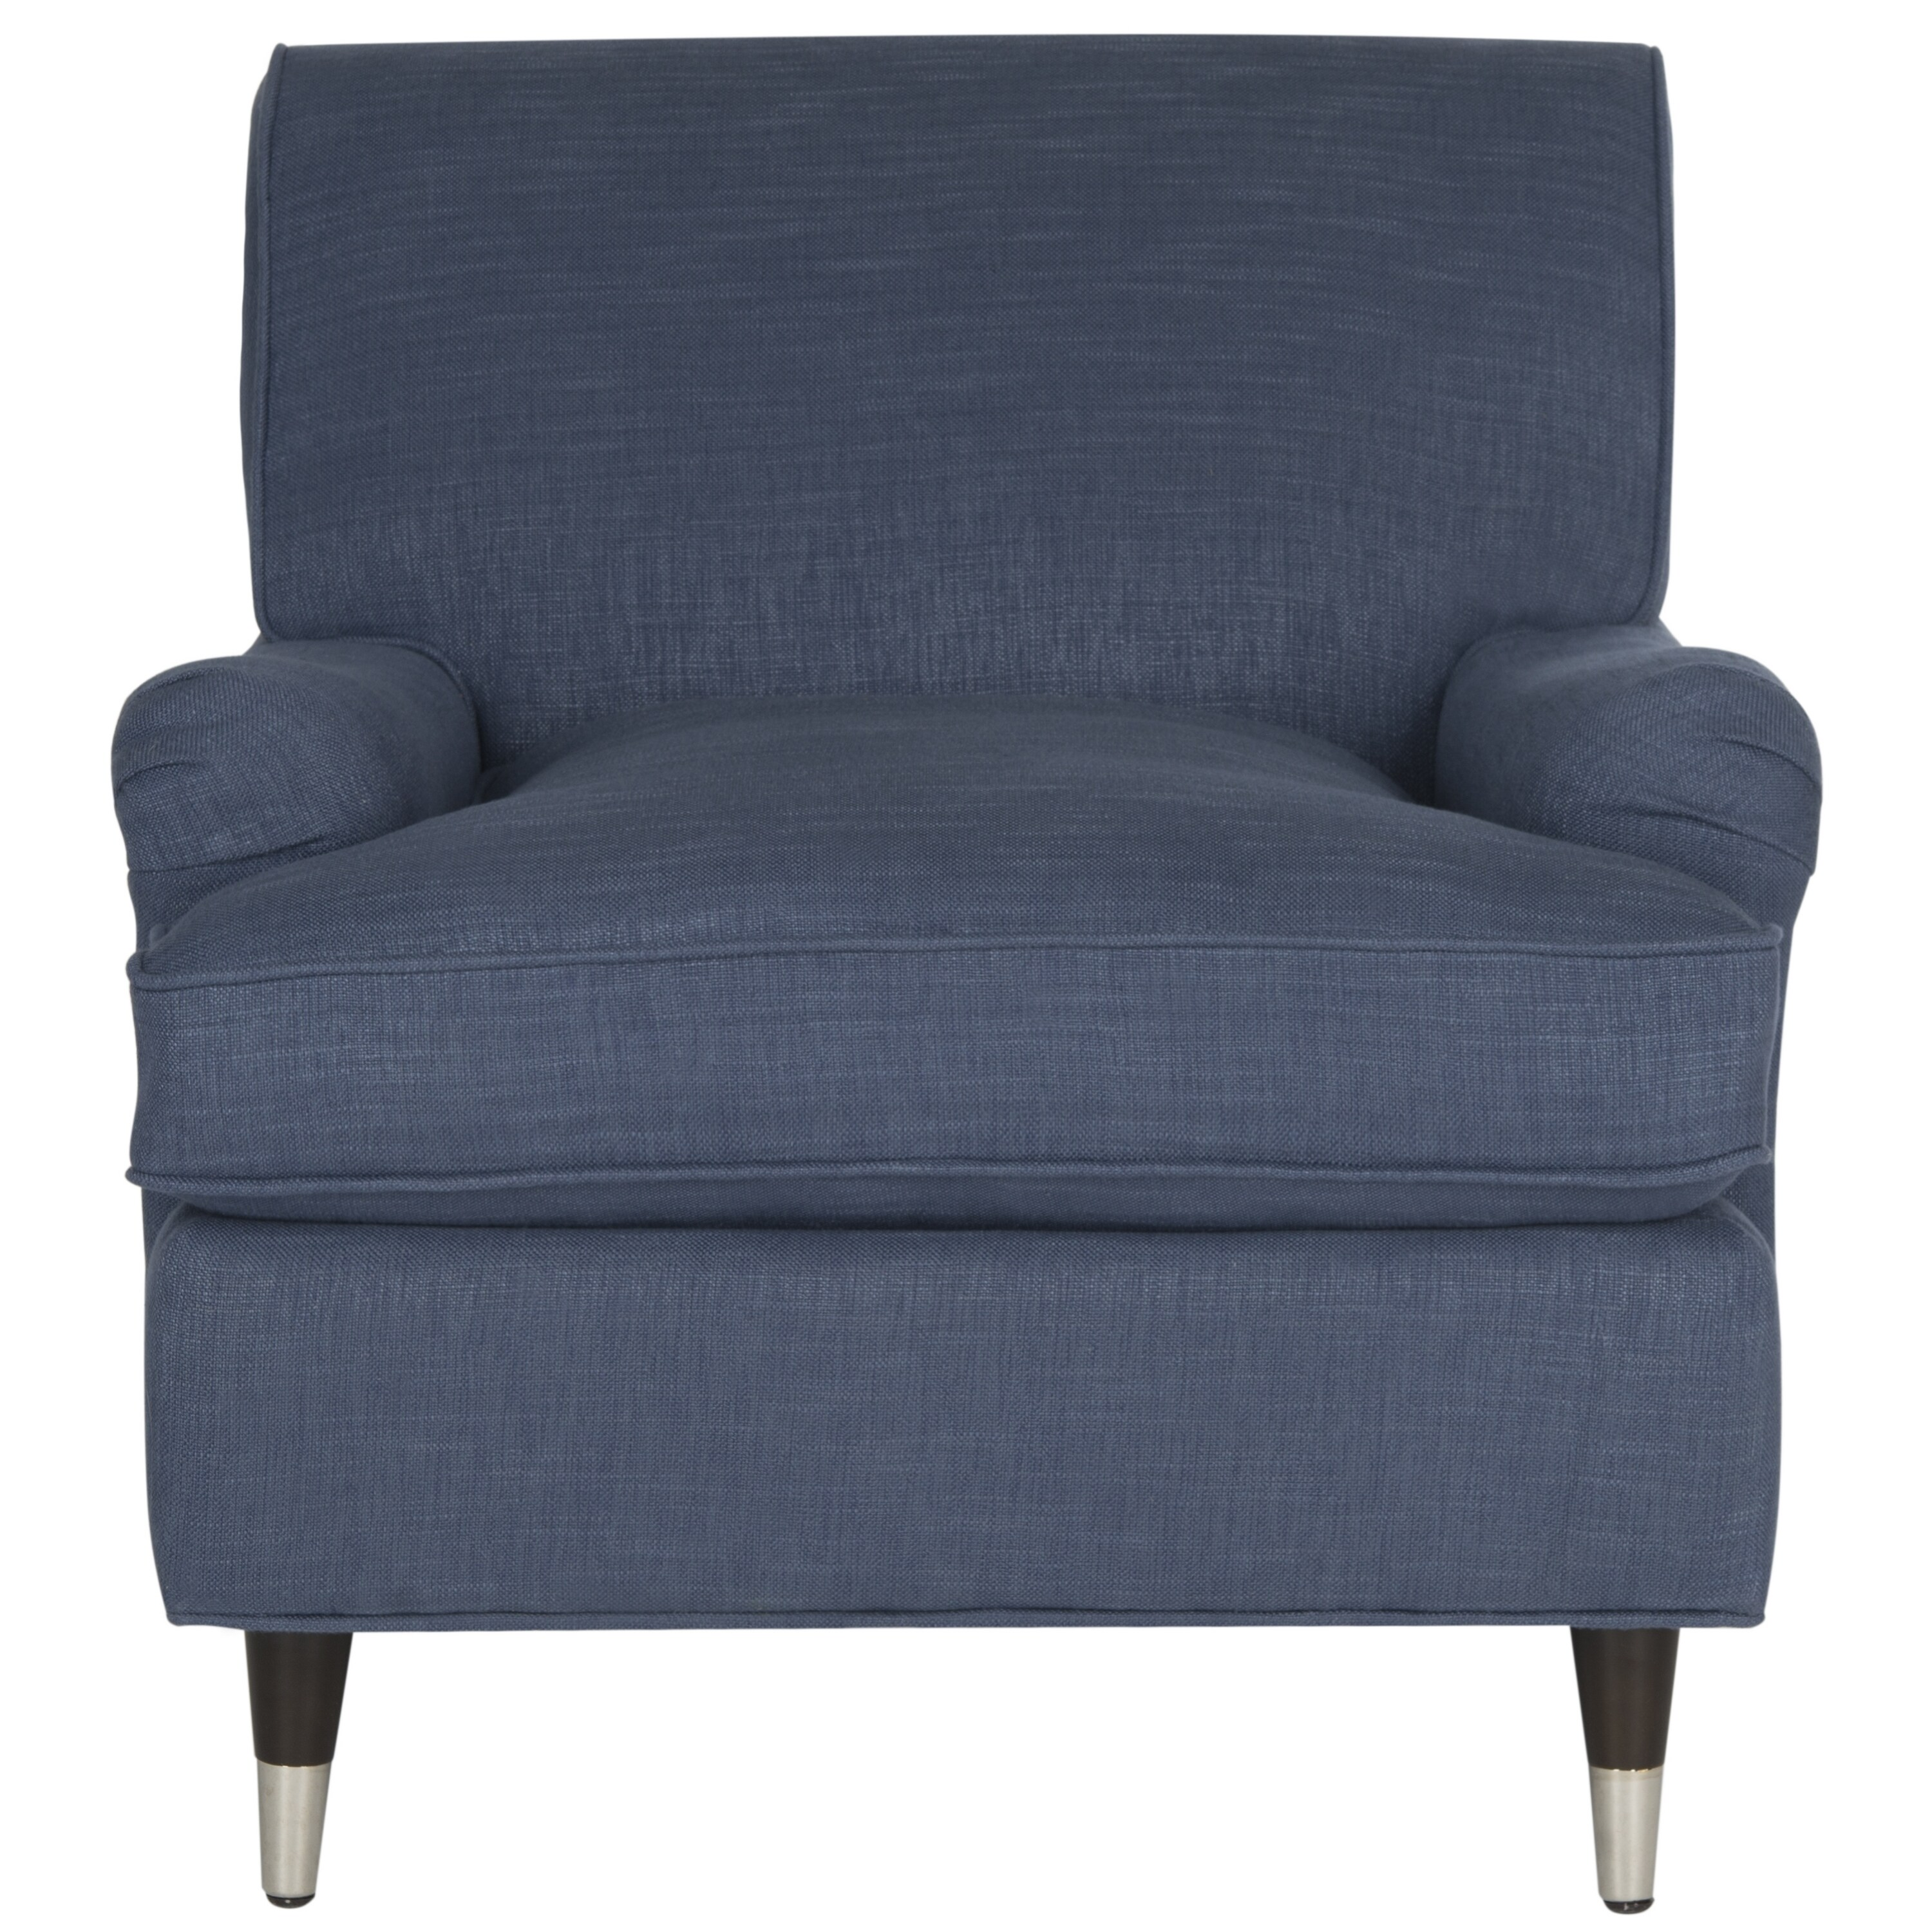 Safavieh Chloe Navy Club Chair   Free Shipping Today   Overstock   17507046